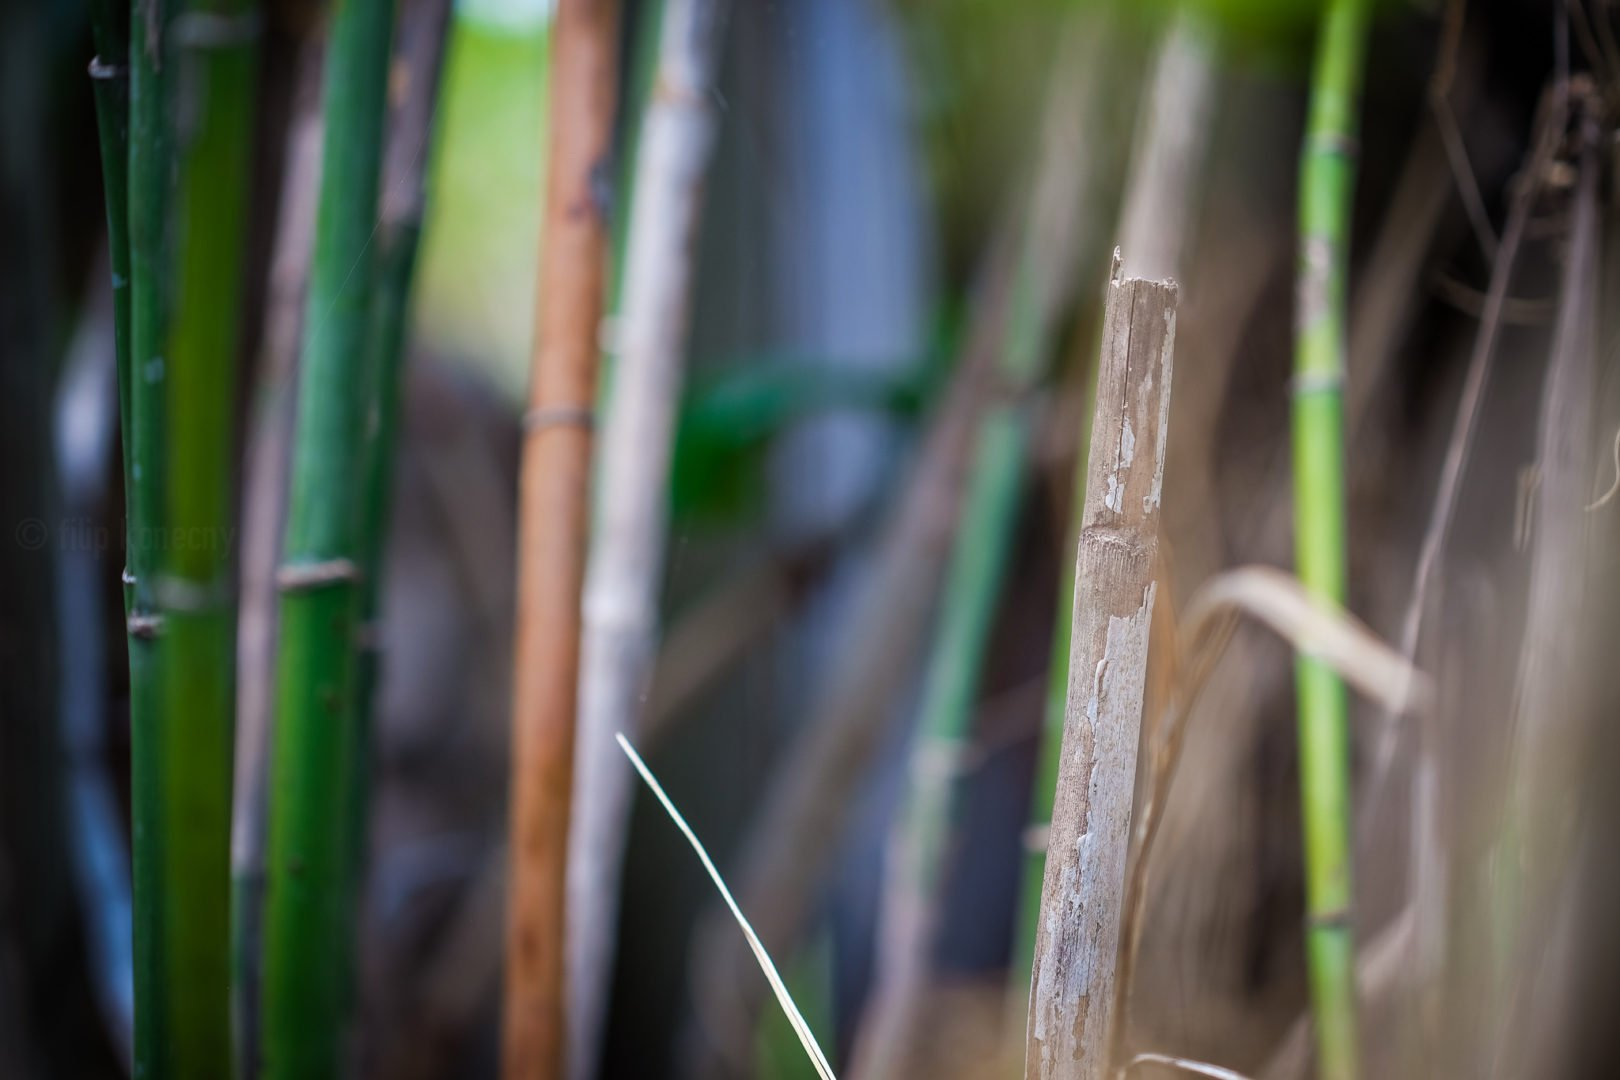 some bamboo shots